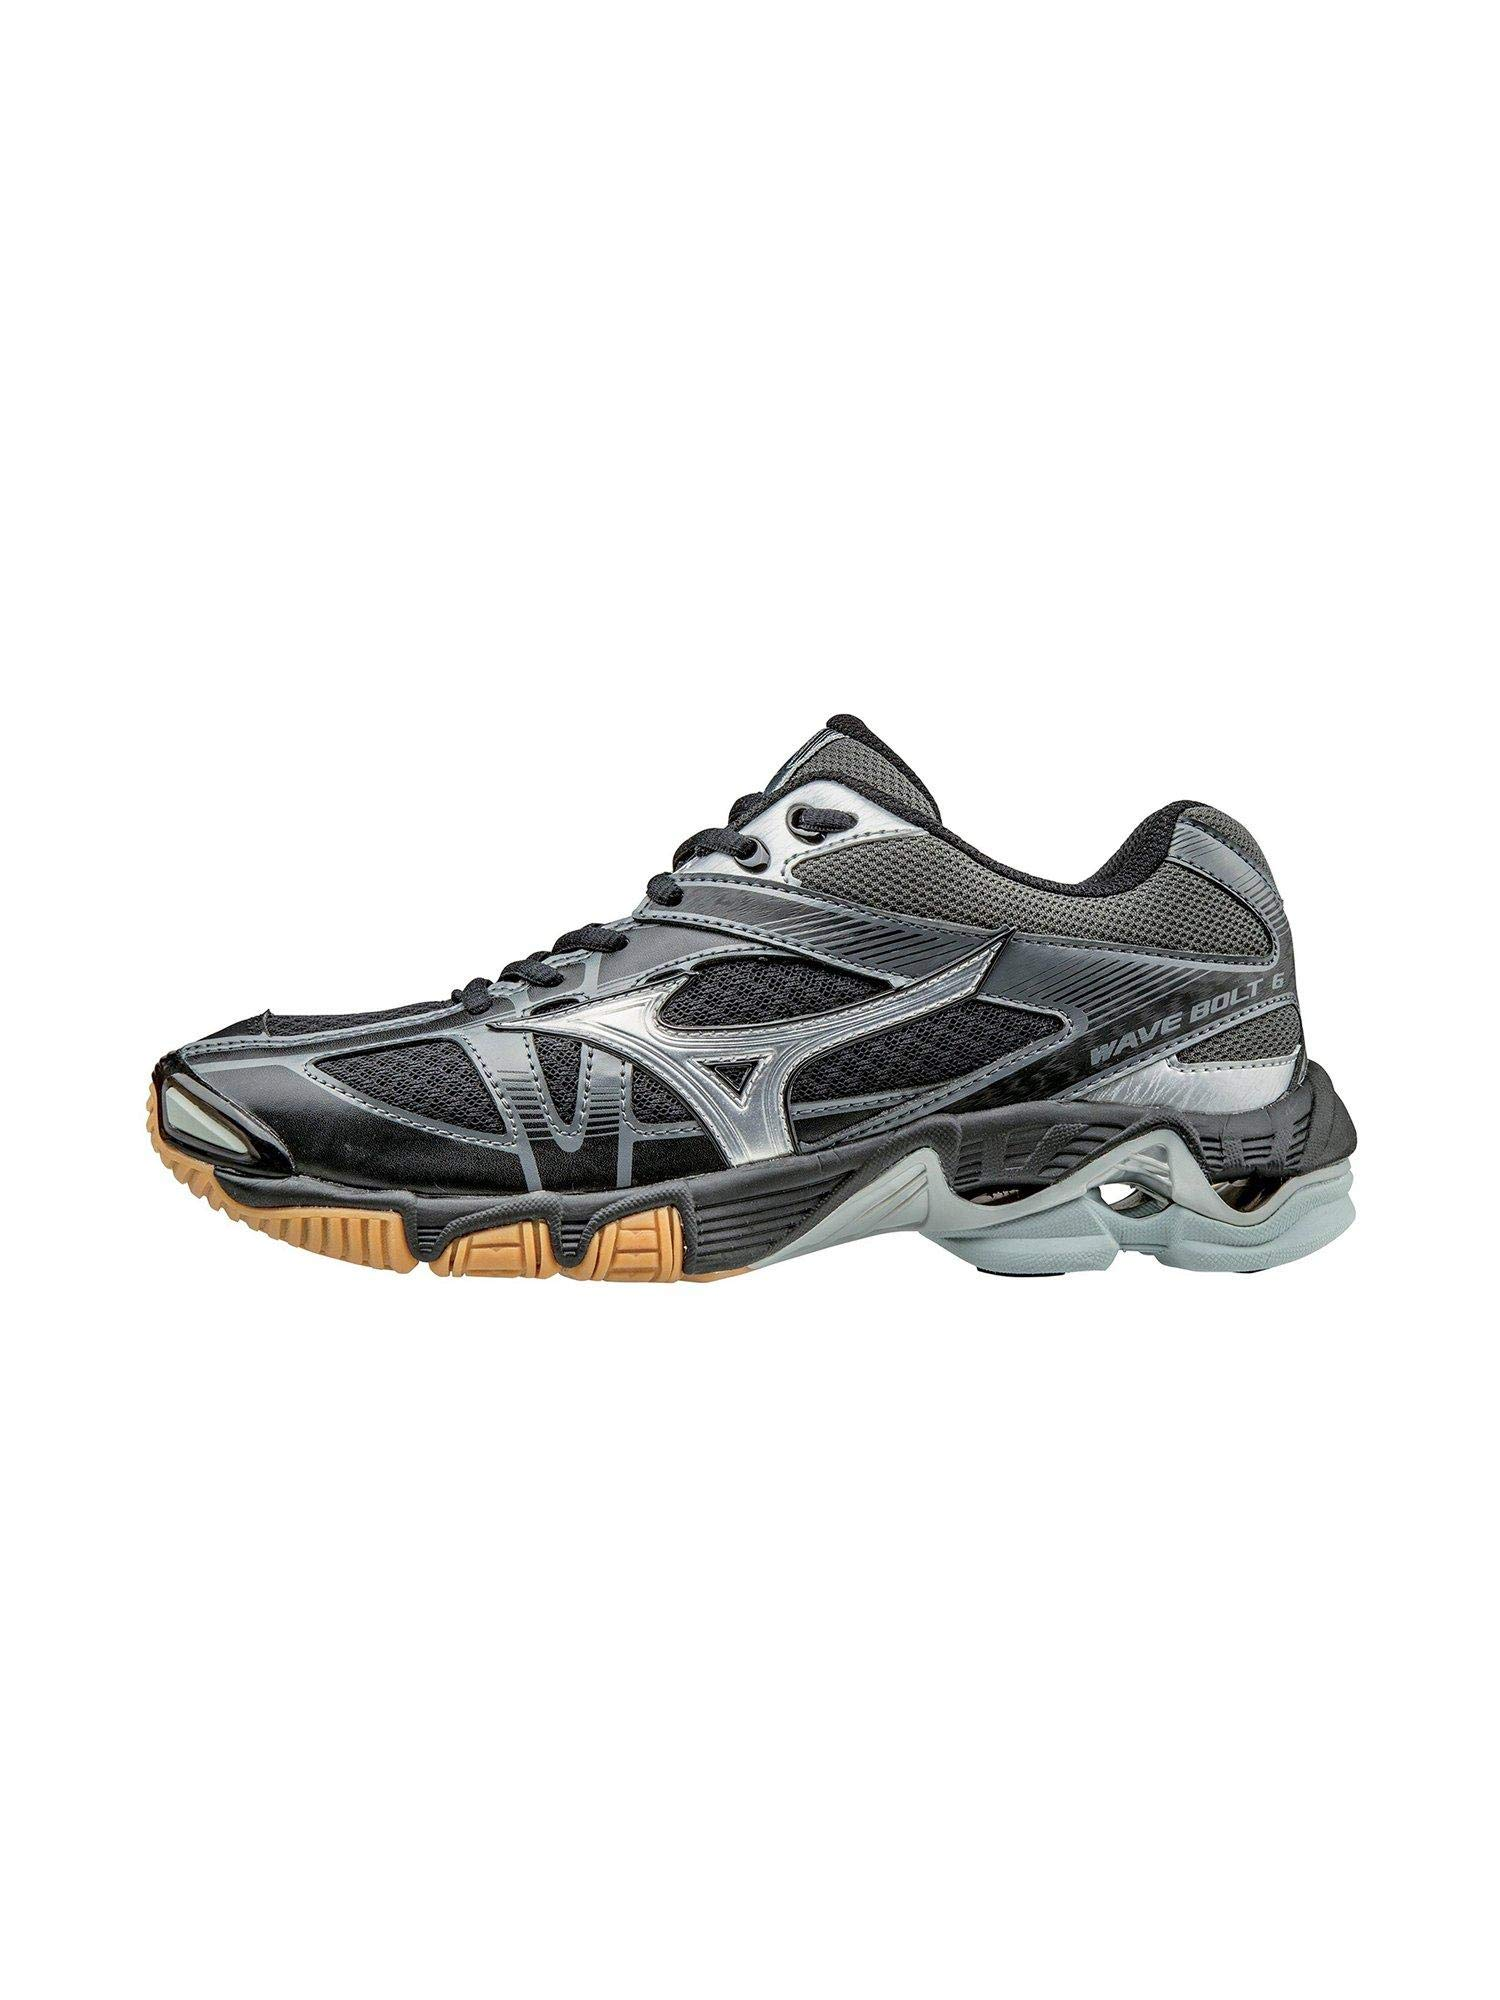 Mizuno Wave Bolt 6 Womens Volleyball Shoes, Black/Silver, 8 B US